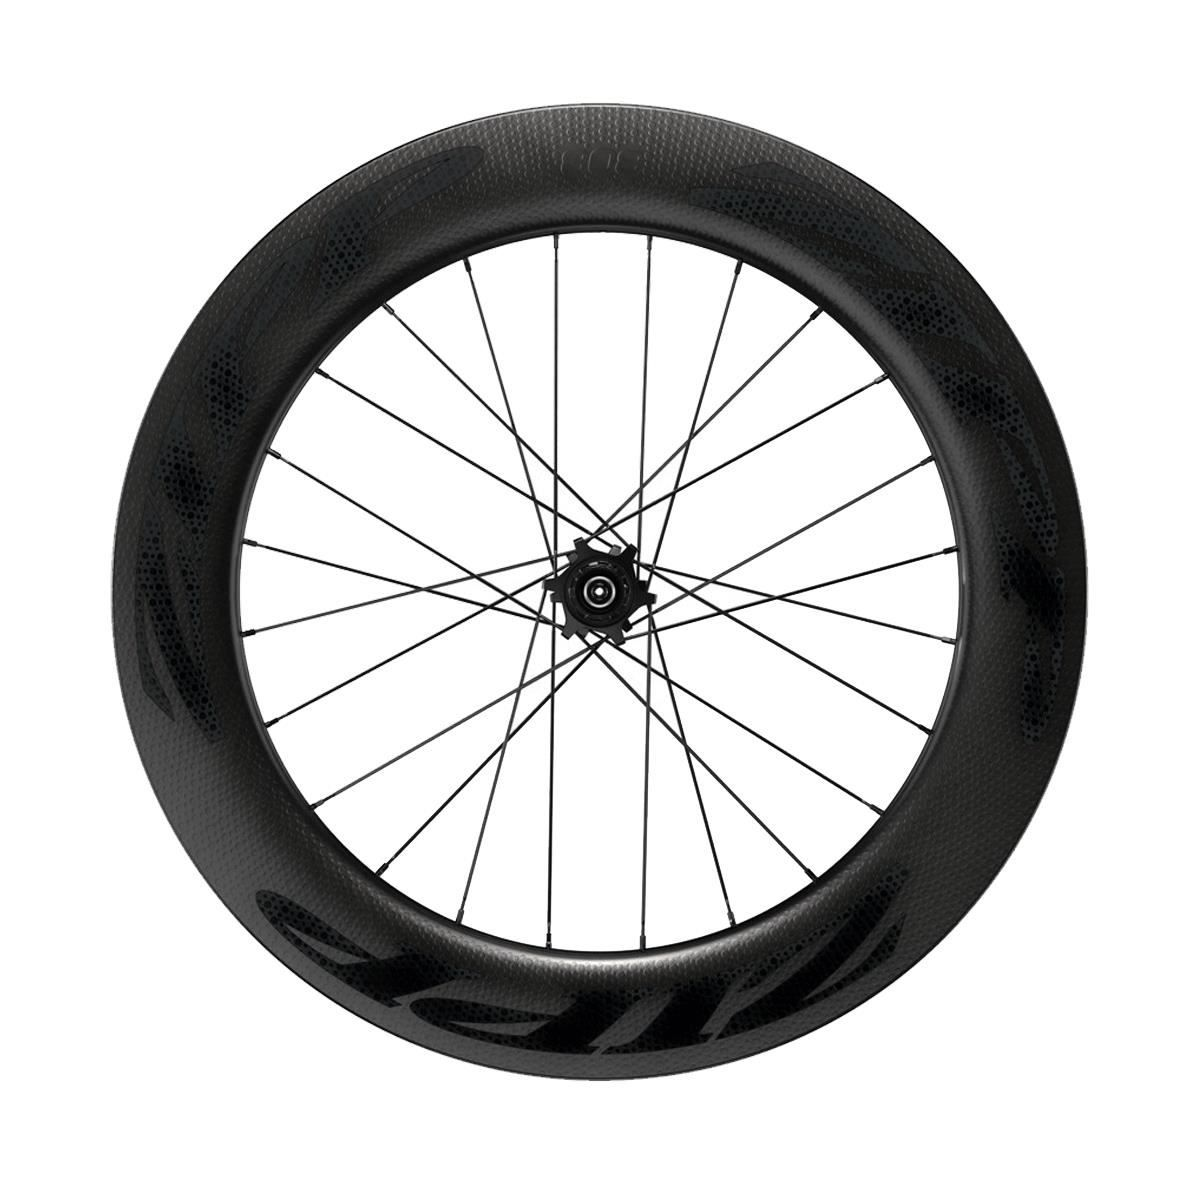 Zipp 808 Carbon Tubeless Disc Brake 6-Bolt 700C 177D Convertible-Quick Release & 12X142Mm Through Axle A1: Black Decal 700C Campagnolo